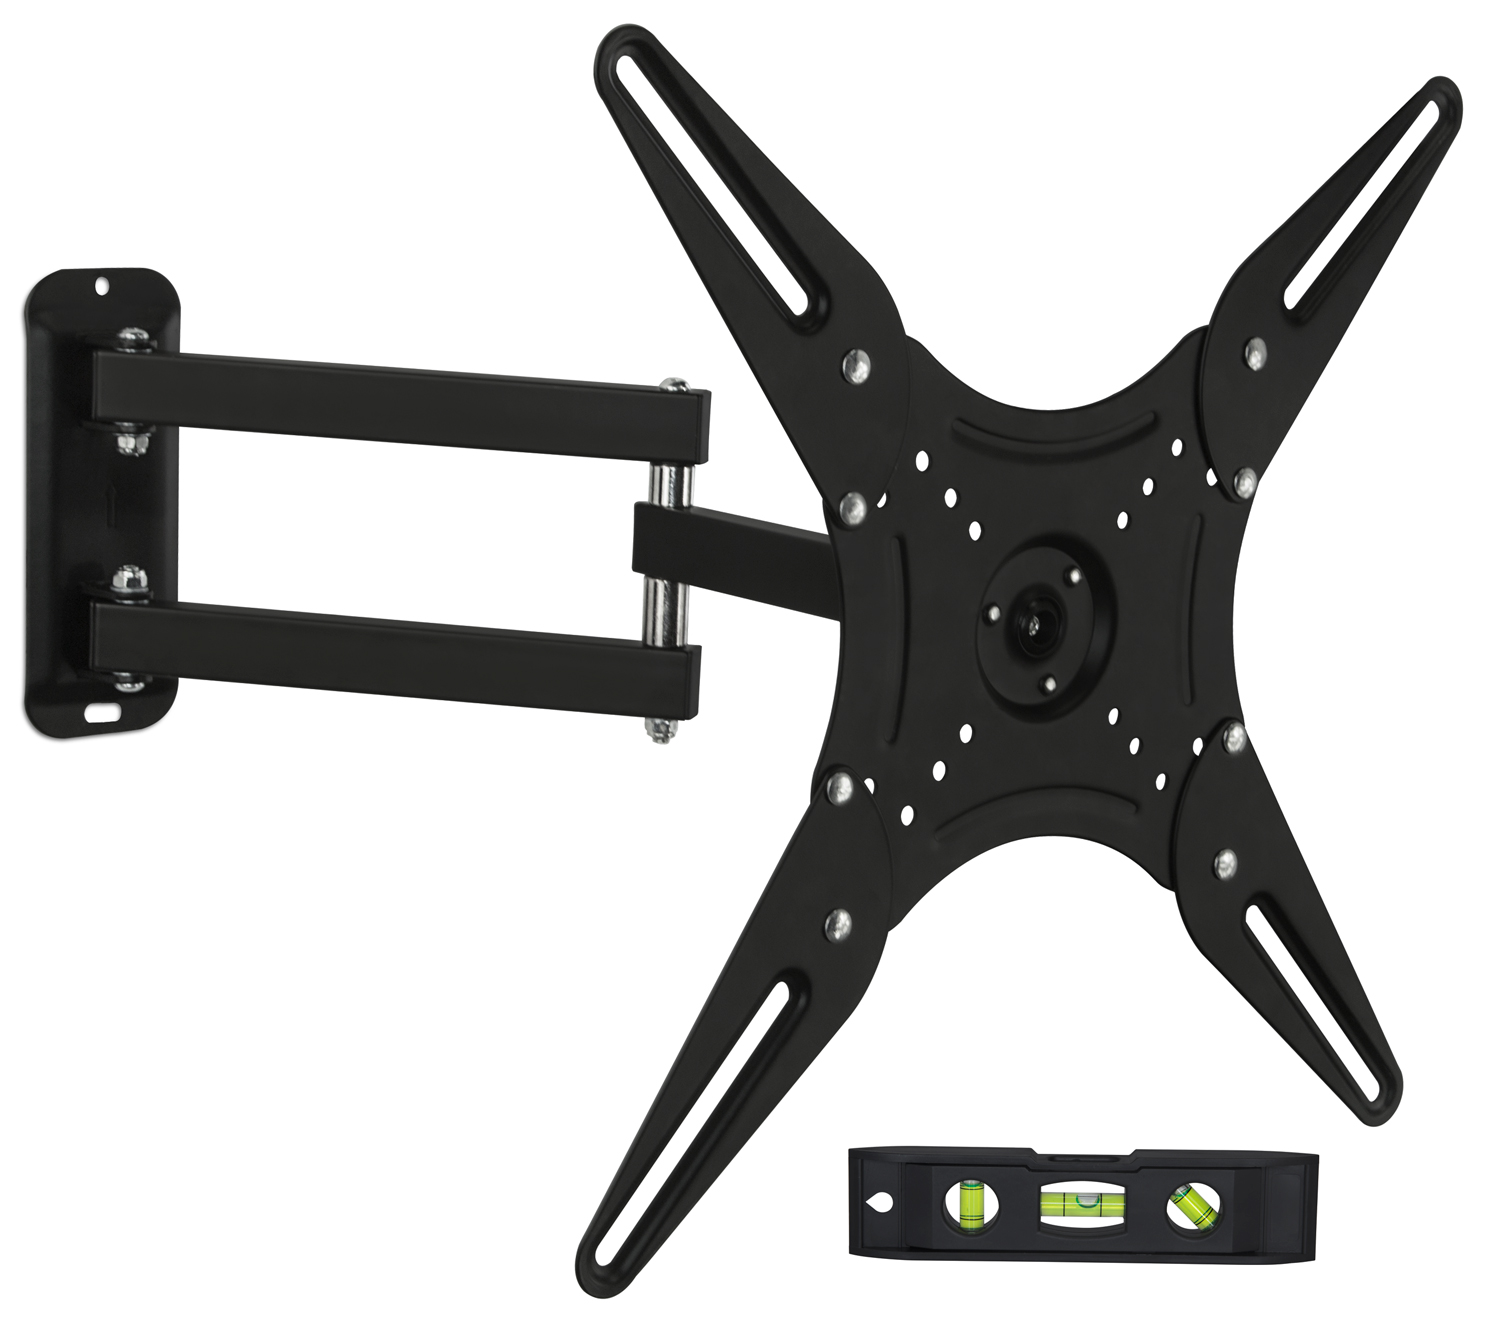 Mount It! TV Wall Mount Full Motion LCD, LED 4K TV Swivel Bracket